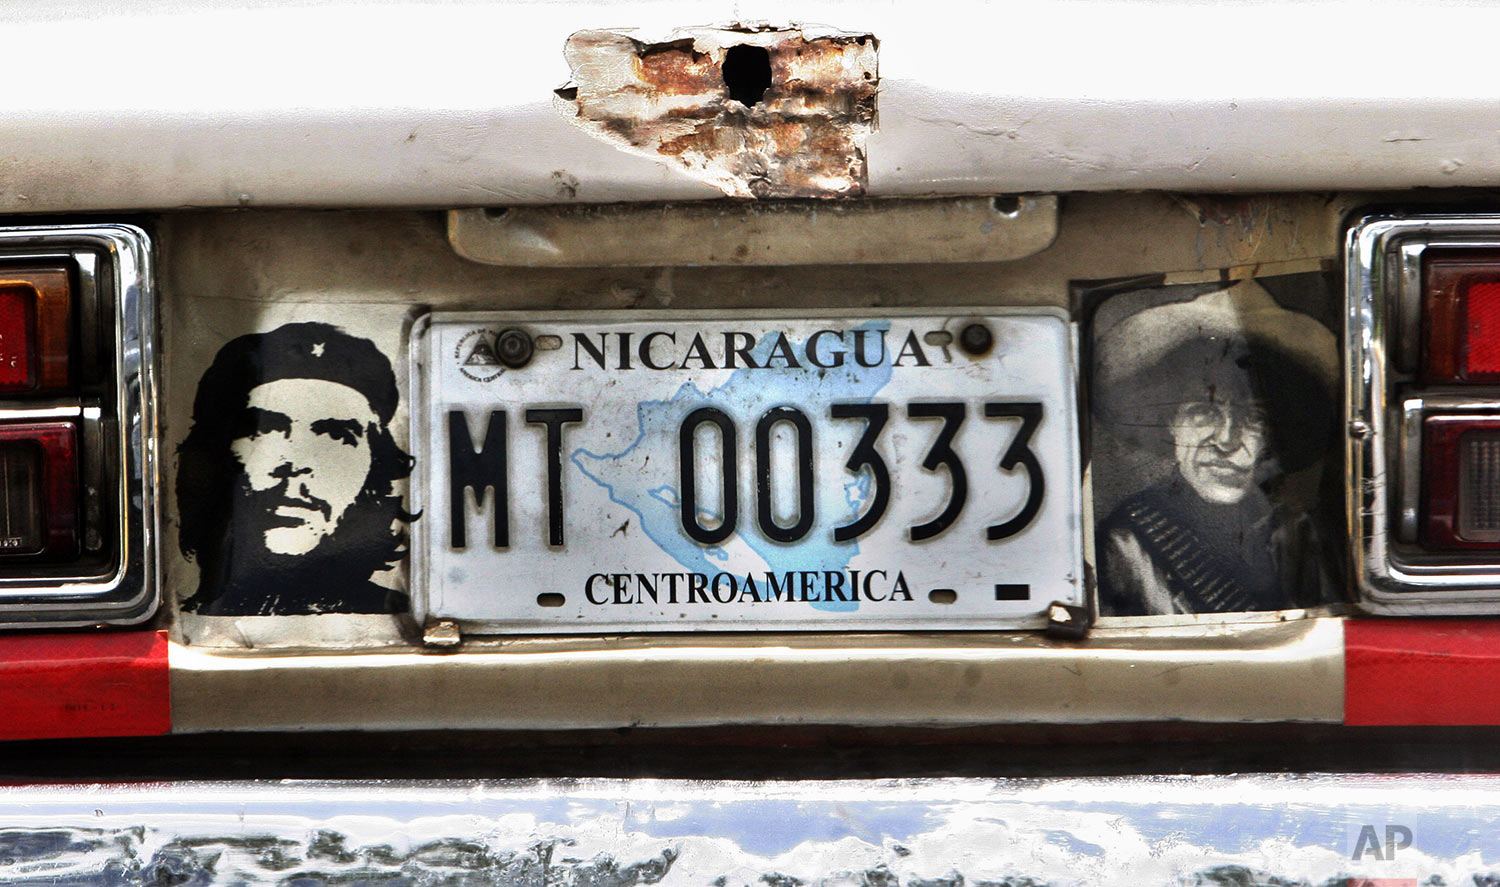 """A car decorated with images of Argentinian revolutionary leader Ernesto """"Che"""" Guevara, left, and Nicaragua's national hero Augusto C. Sandino, right, is seen in Managua, Tuesday, June 26, 2007. (AP Photo/Esteban Felix)"""